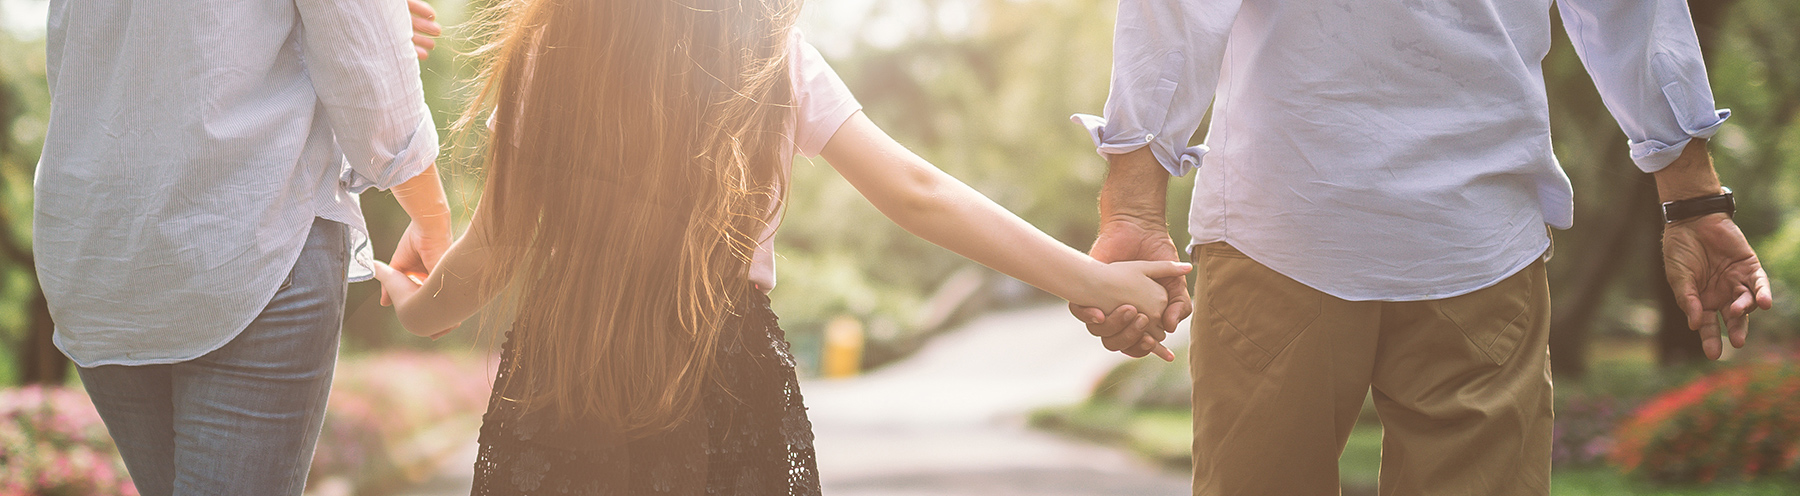 Parents hold hands with daughter